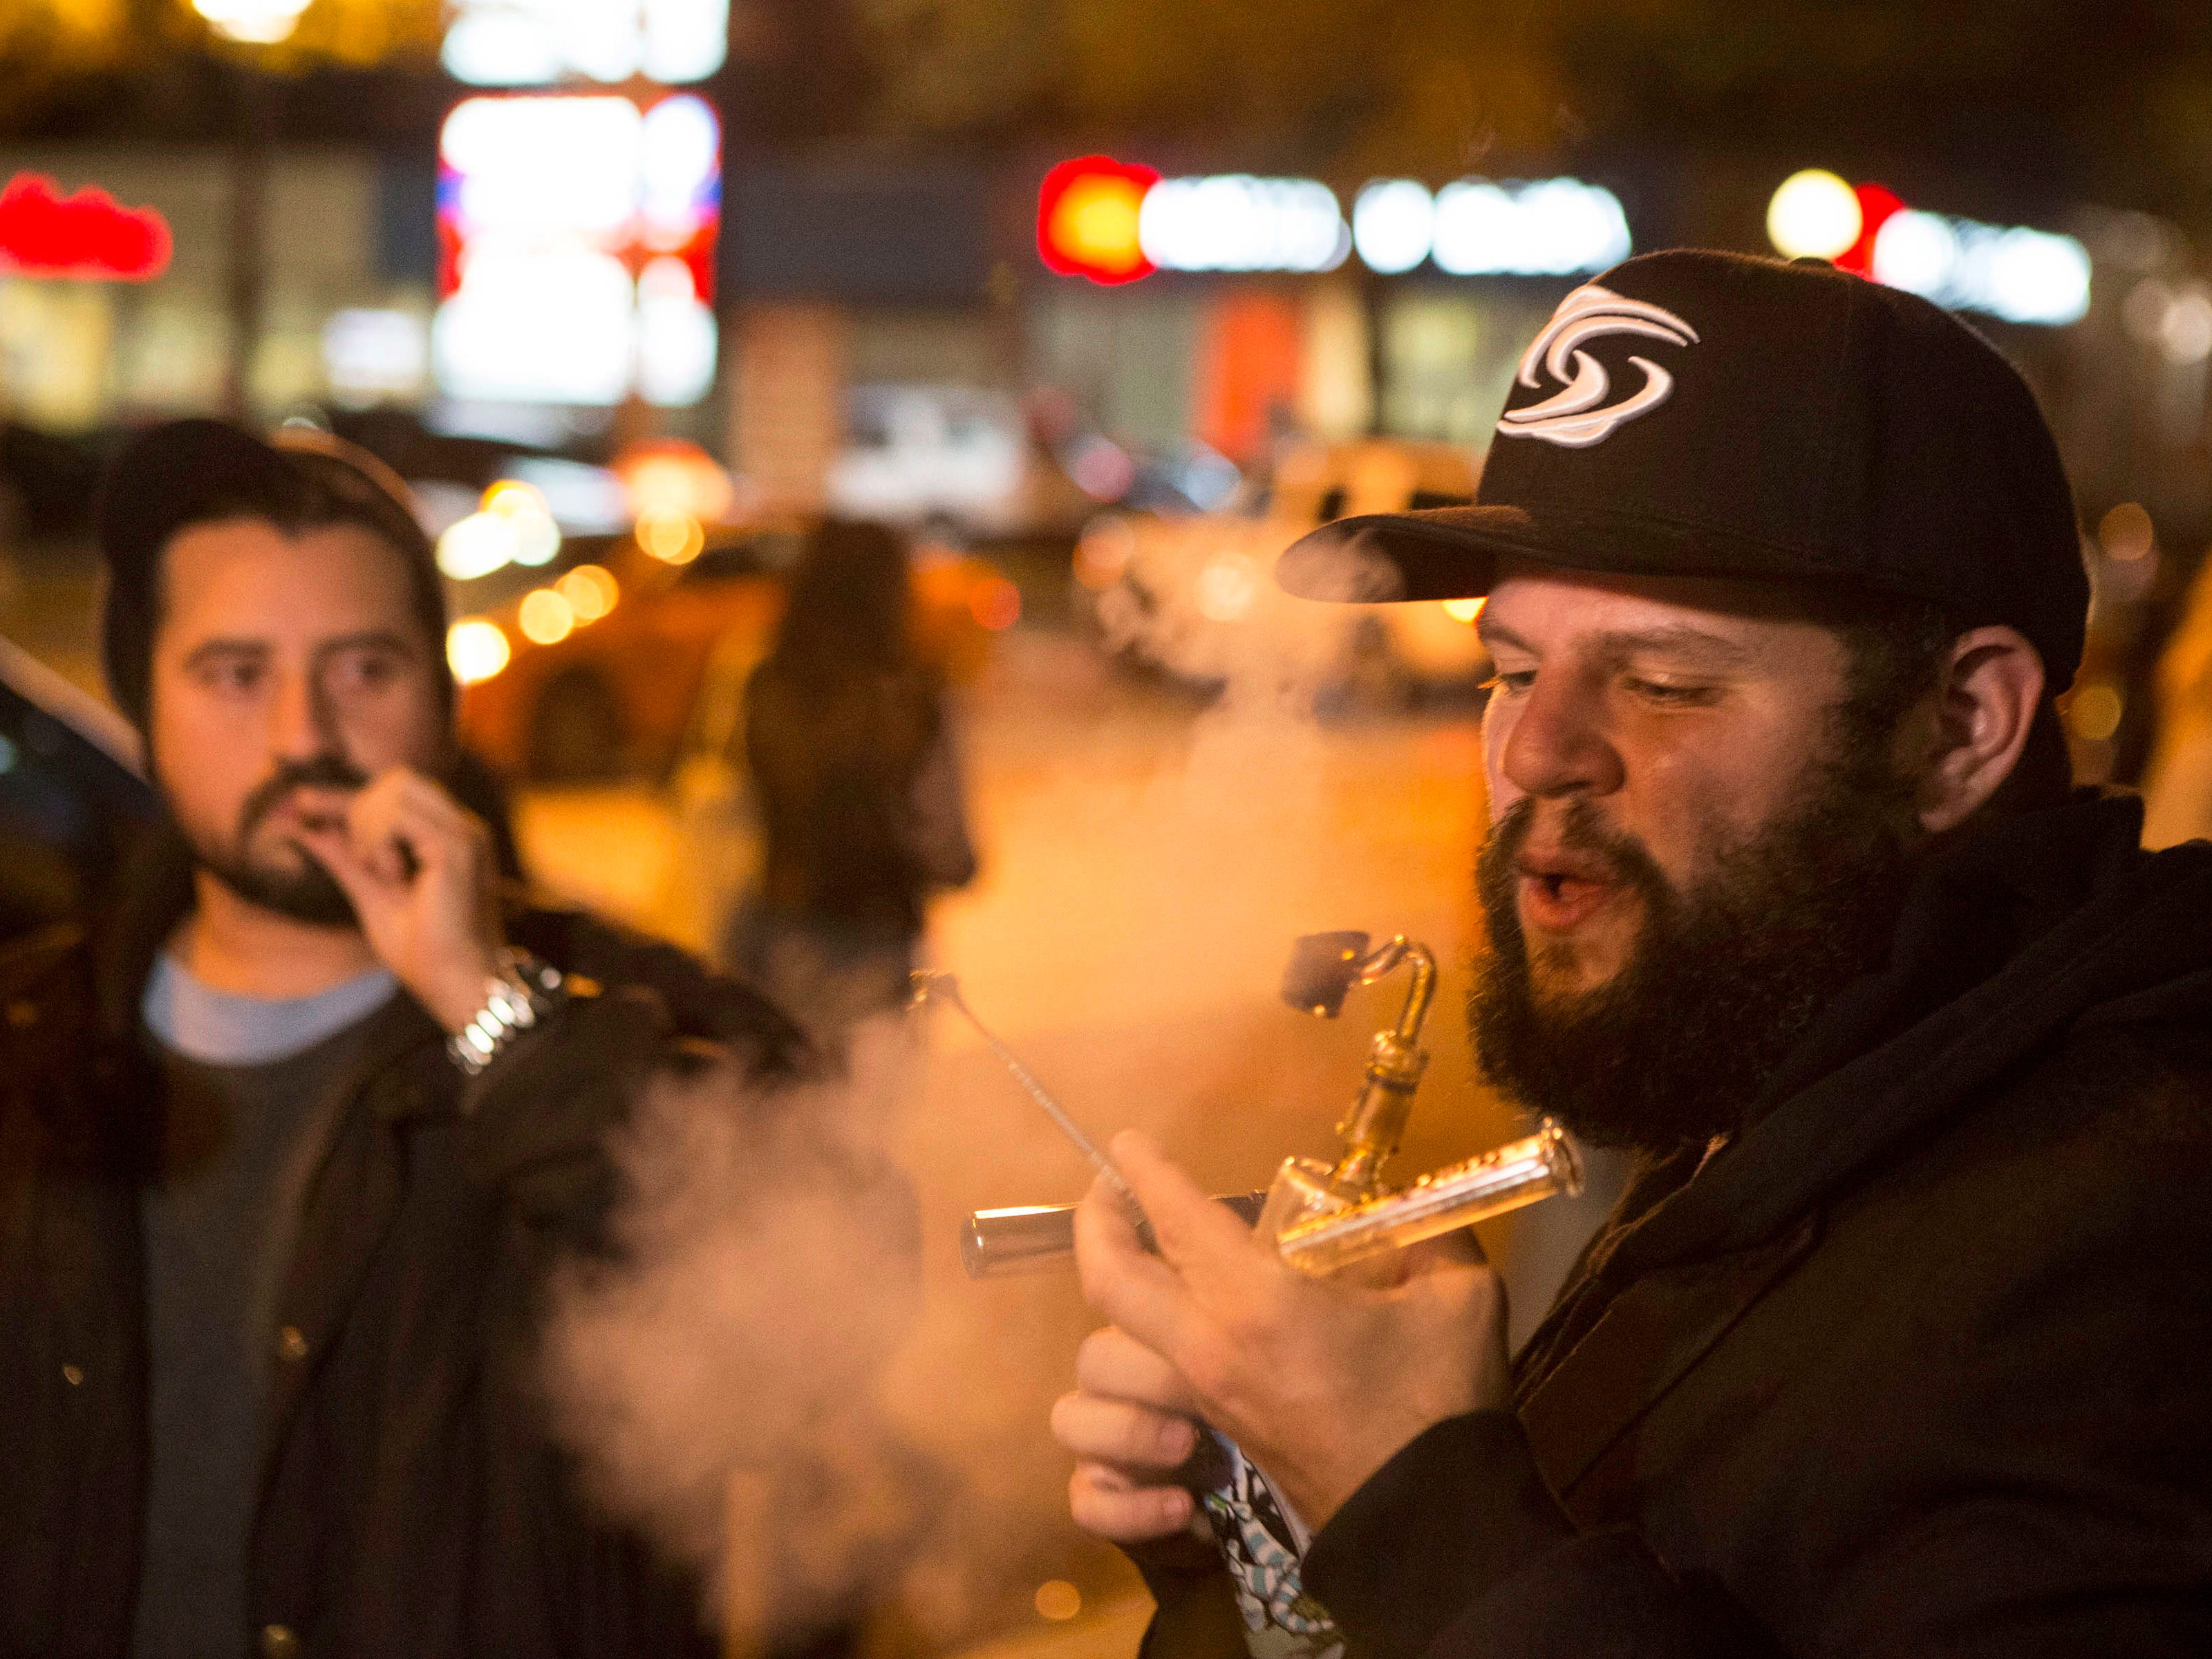 People smoke cannabis on the street in Toronto on Wednesday, Oct. 17, 2018. Canada became the largest country with a legal national marijuana marketplace as sales began early Wednesday in Newfoundland. (Chris Young/The Canadian Press via AP) ORG XMIT: CHY109